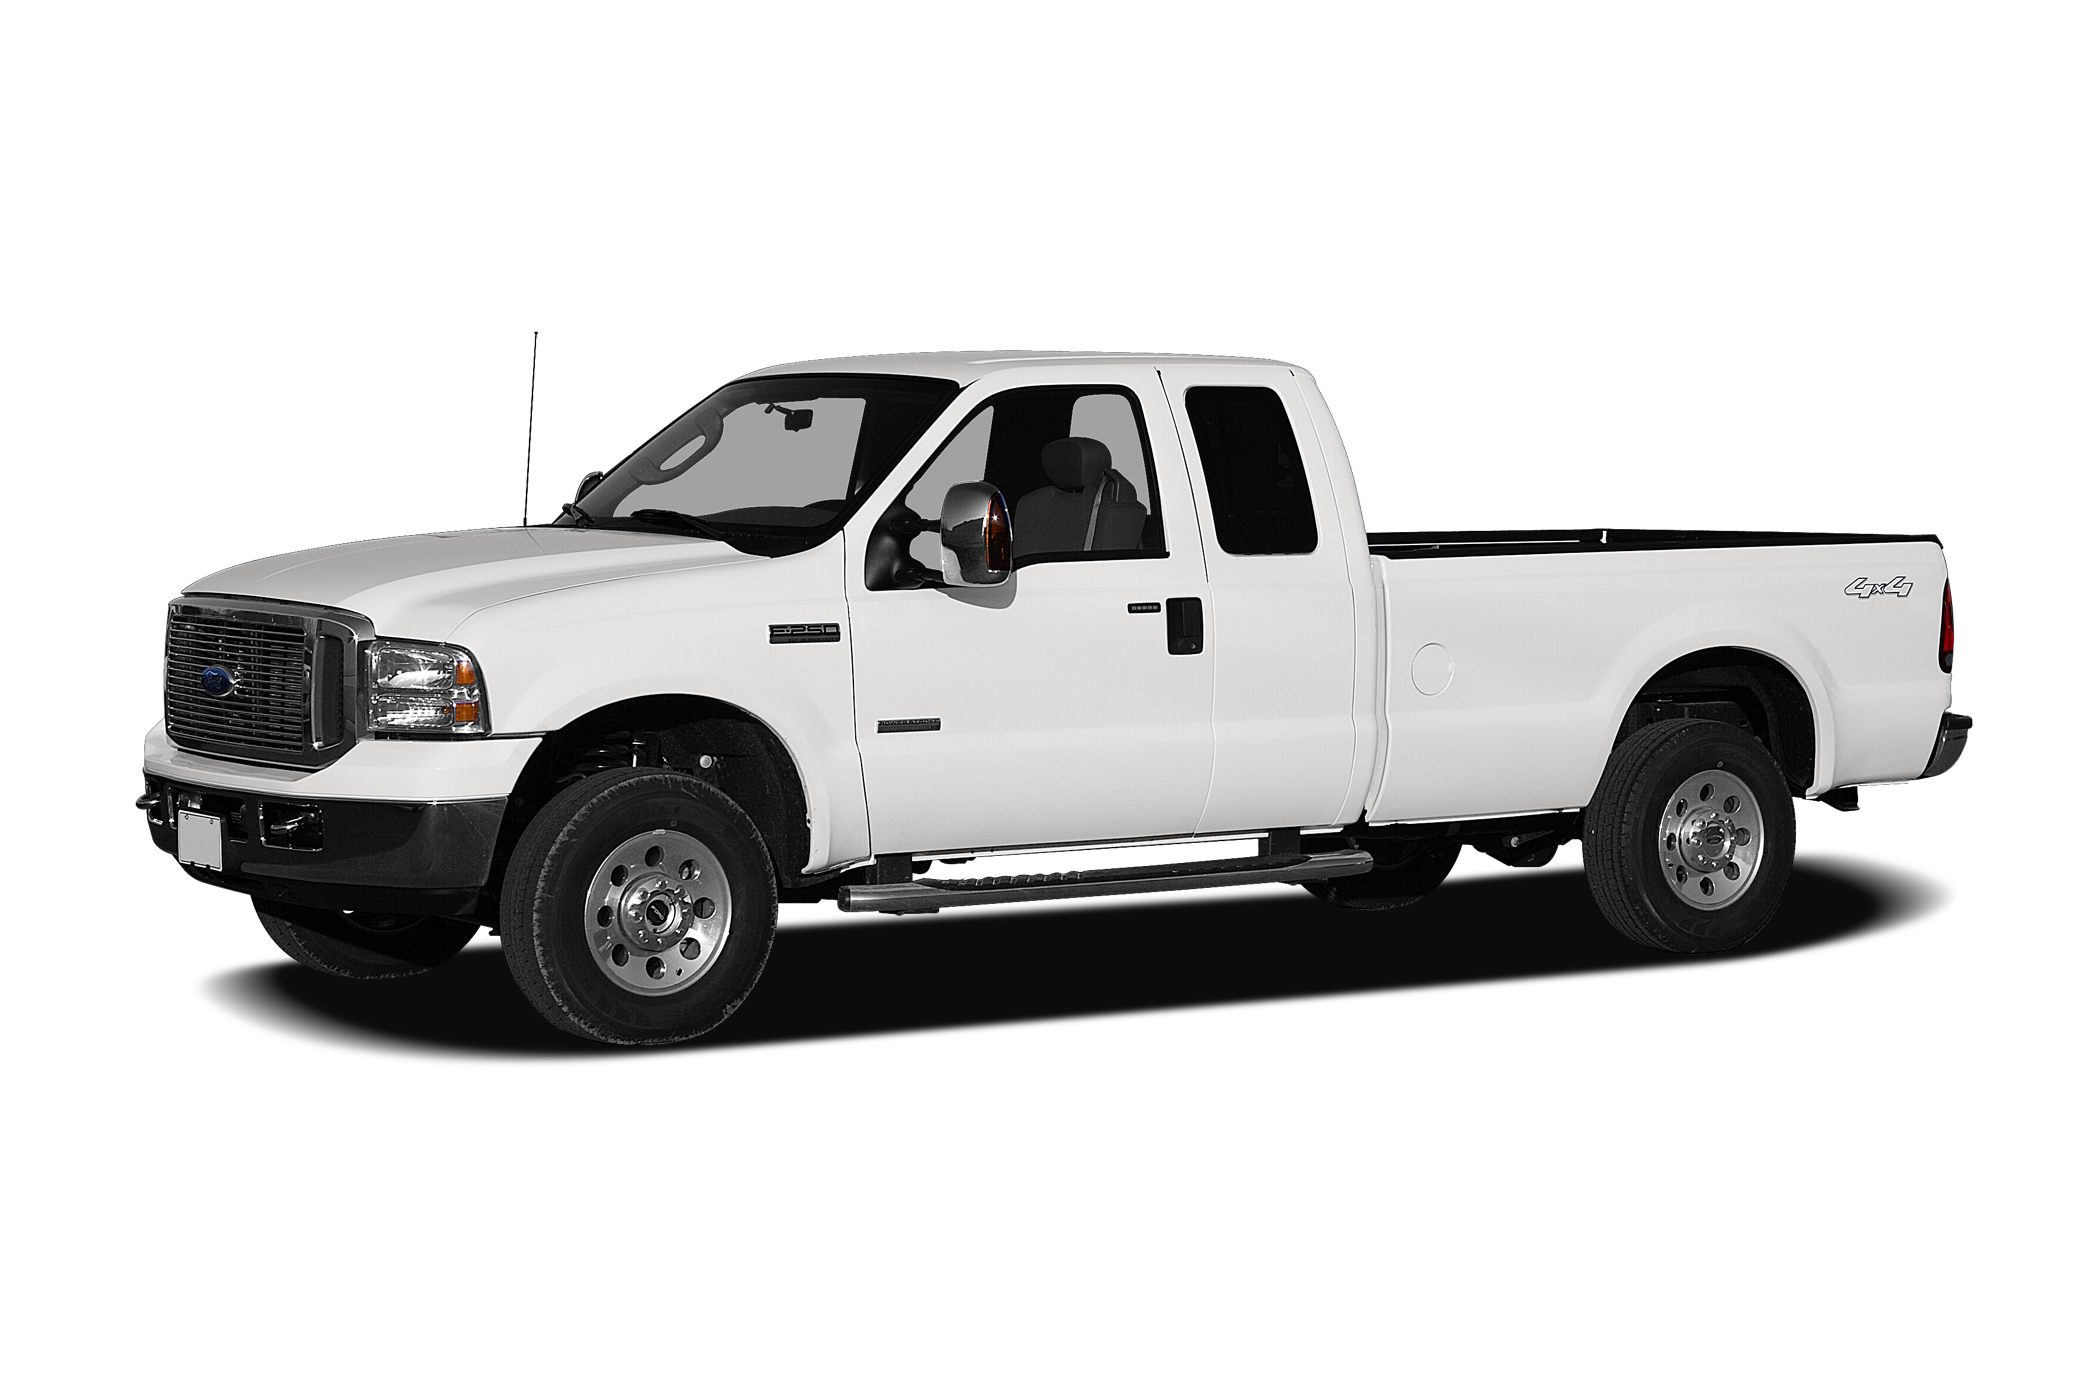 2006 Ford F-250 XL Vehicle equipped with snow plow Miles 125237Color Gray Stock 6EC18408 VIN